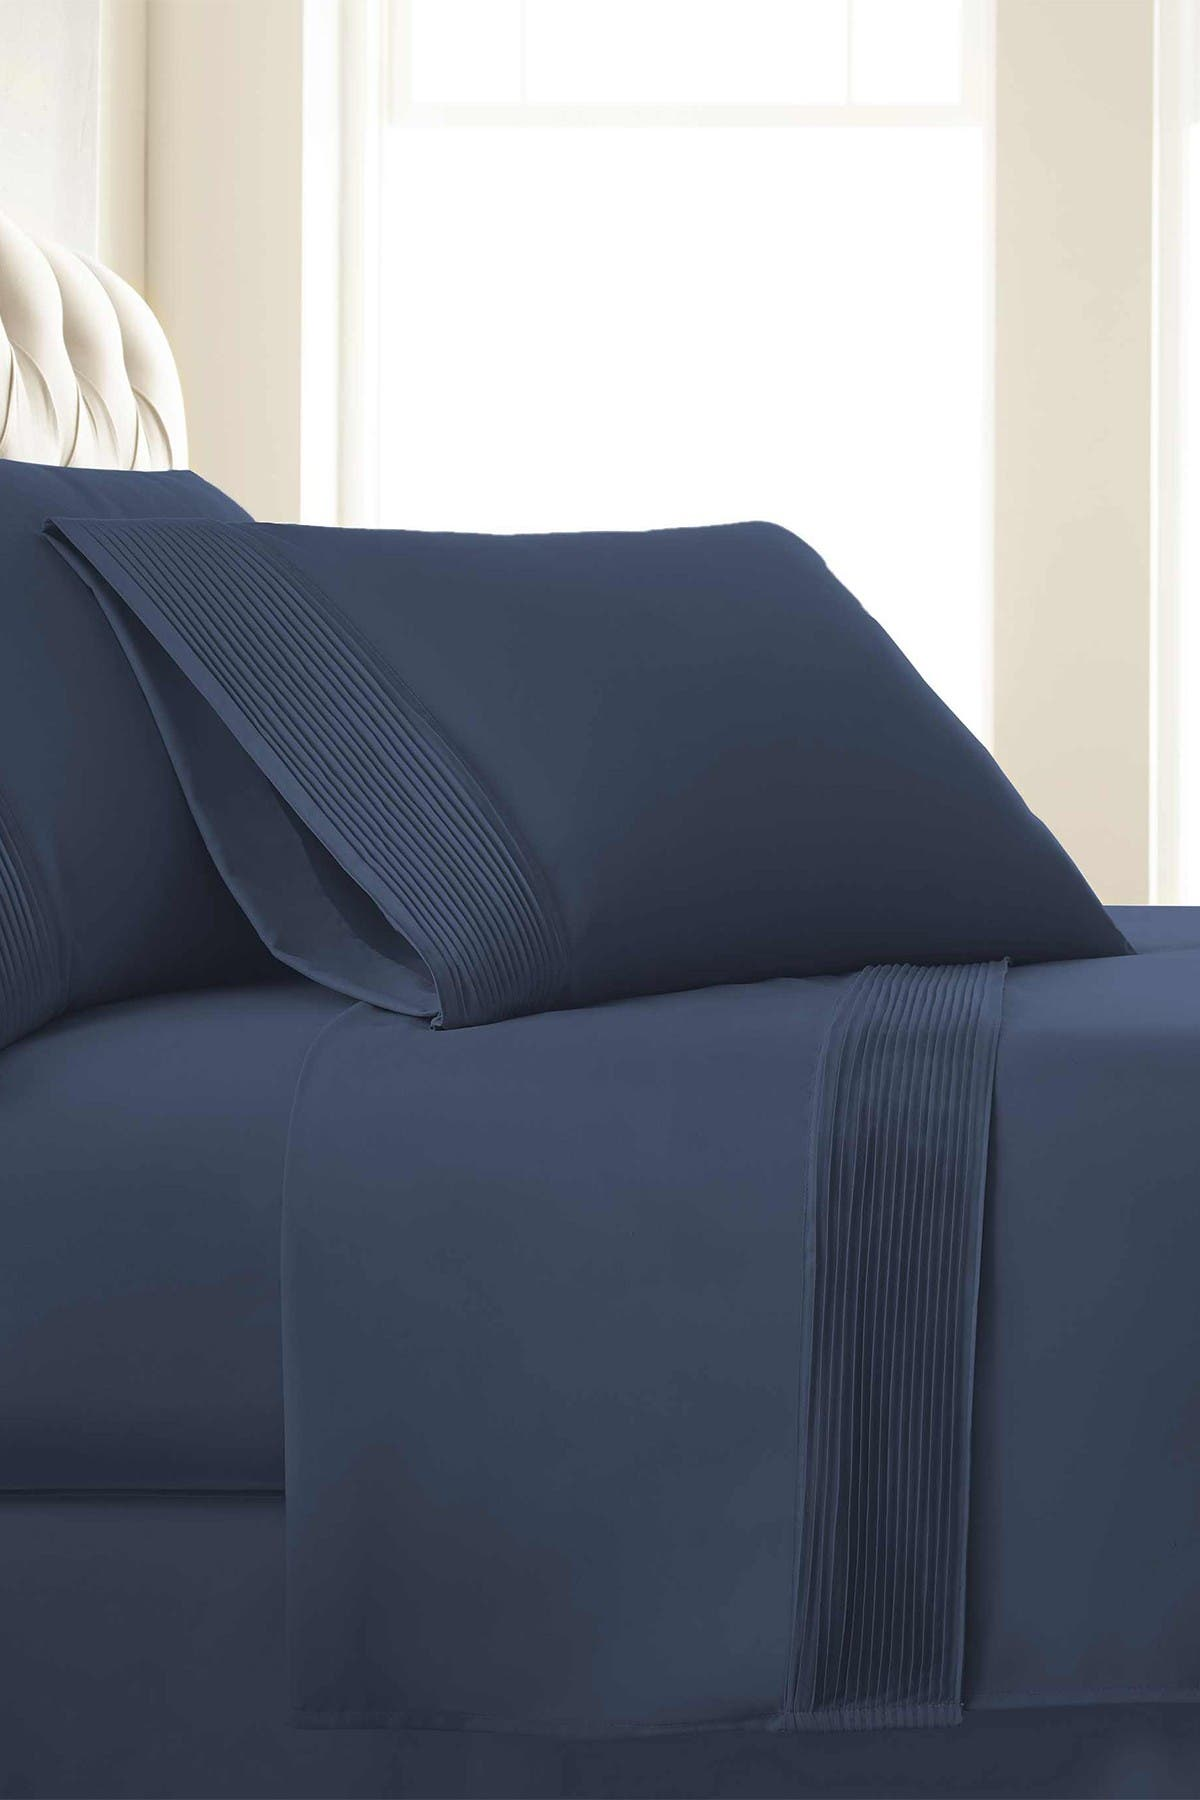 Image of SOUTHSHORE FINE LINENS King Sized Premium Collection Double Brushed Extra Deep Pocket Pleated Sheet Set - Dark Blue